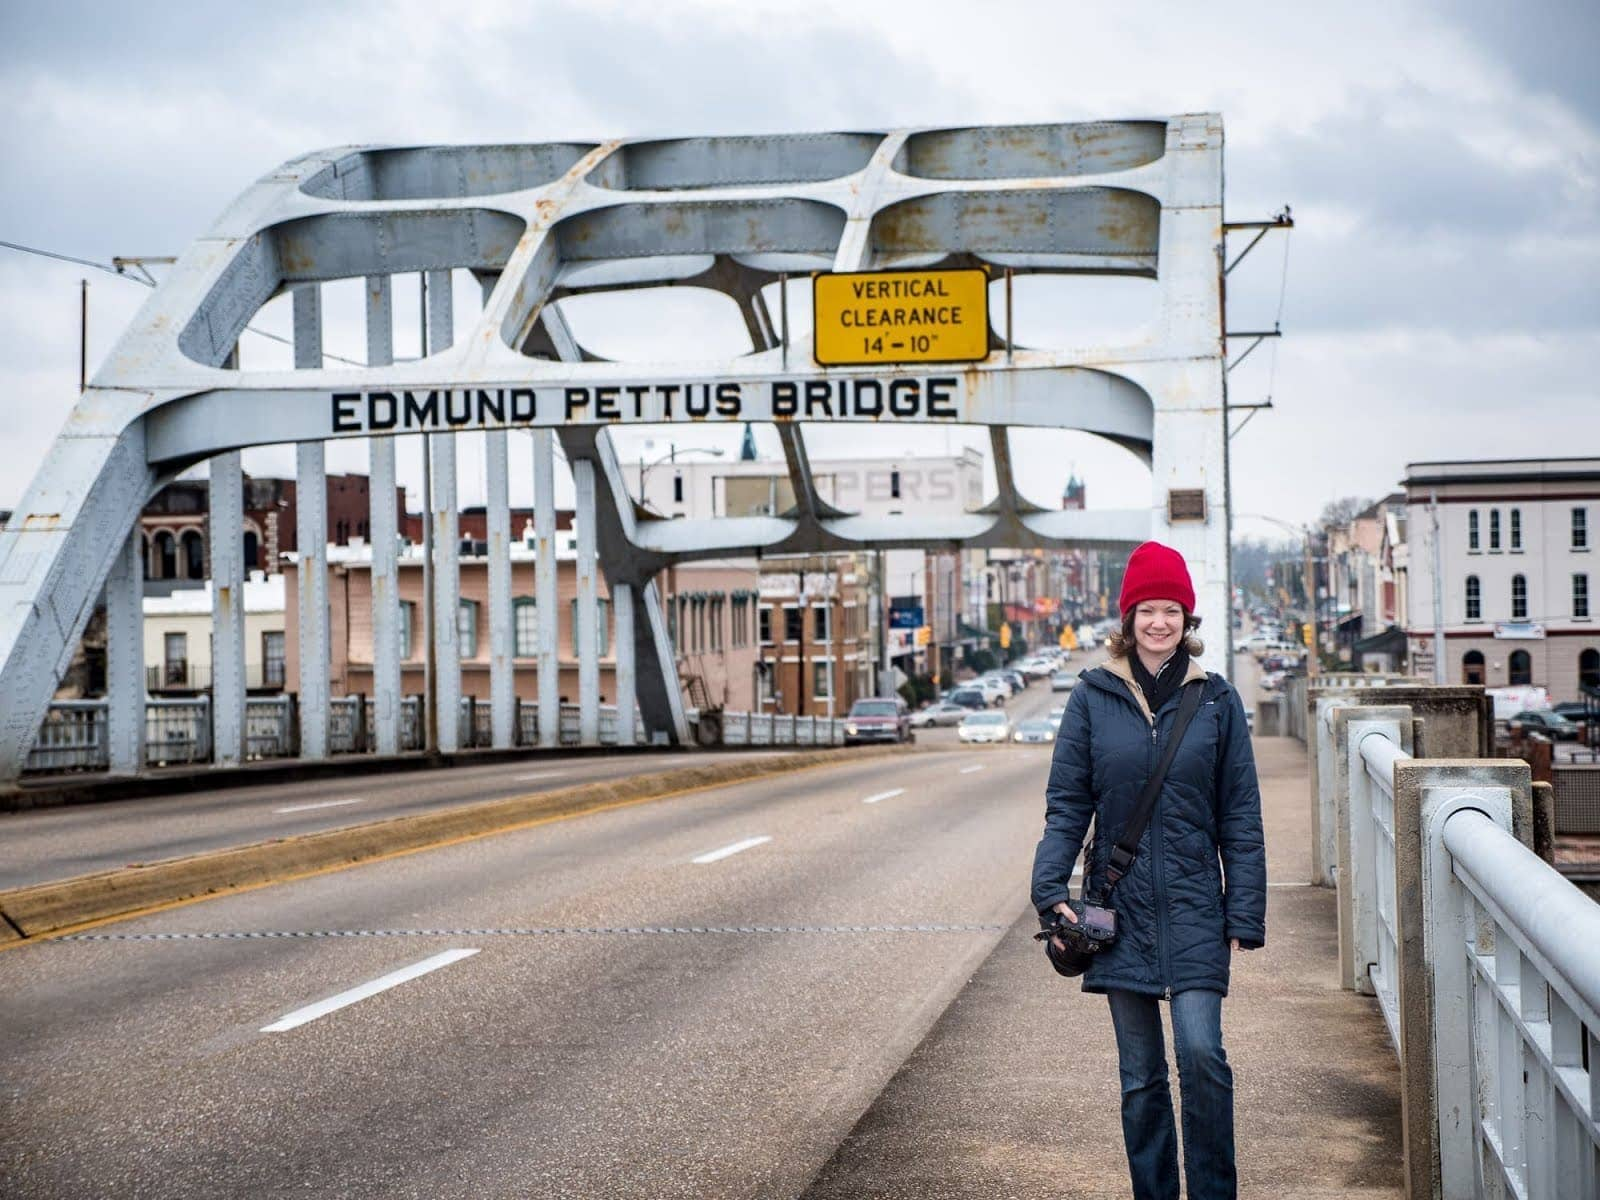 Edmund Pettus Bridge Selma Alabama by Laurence Norah-2